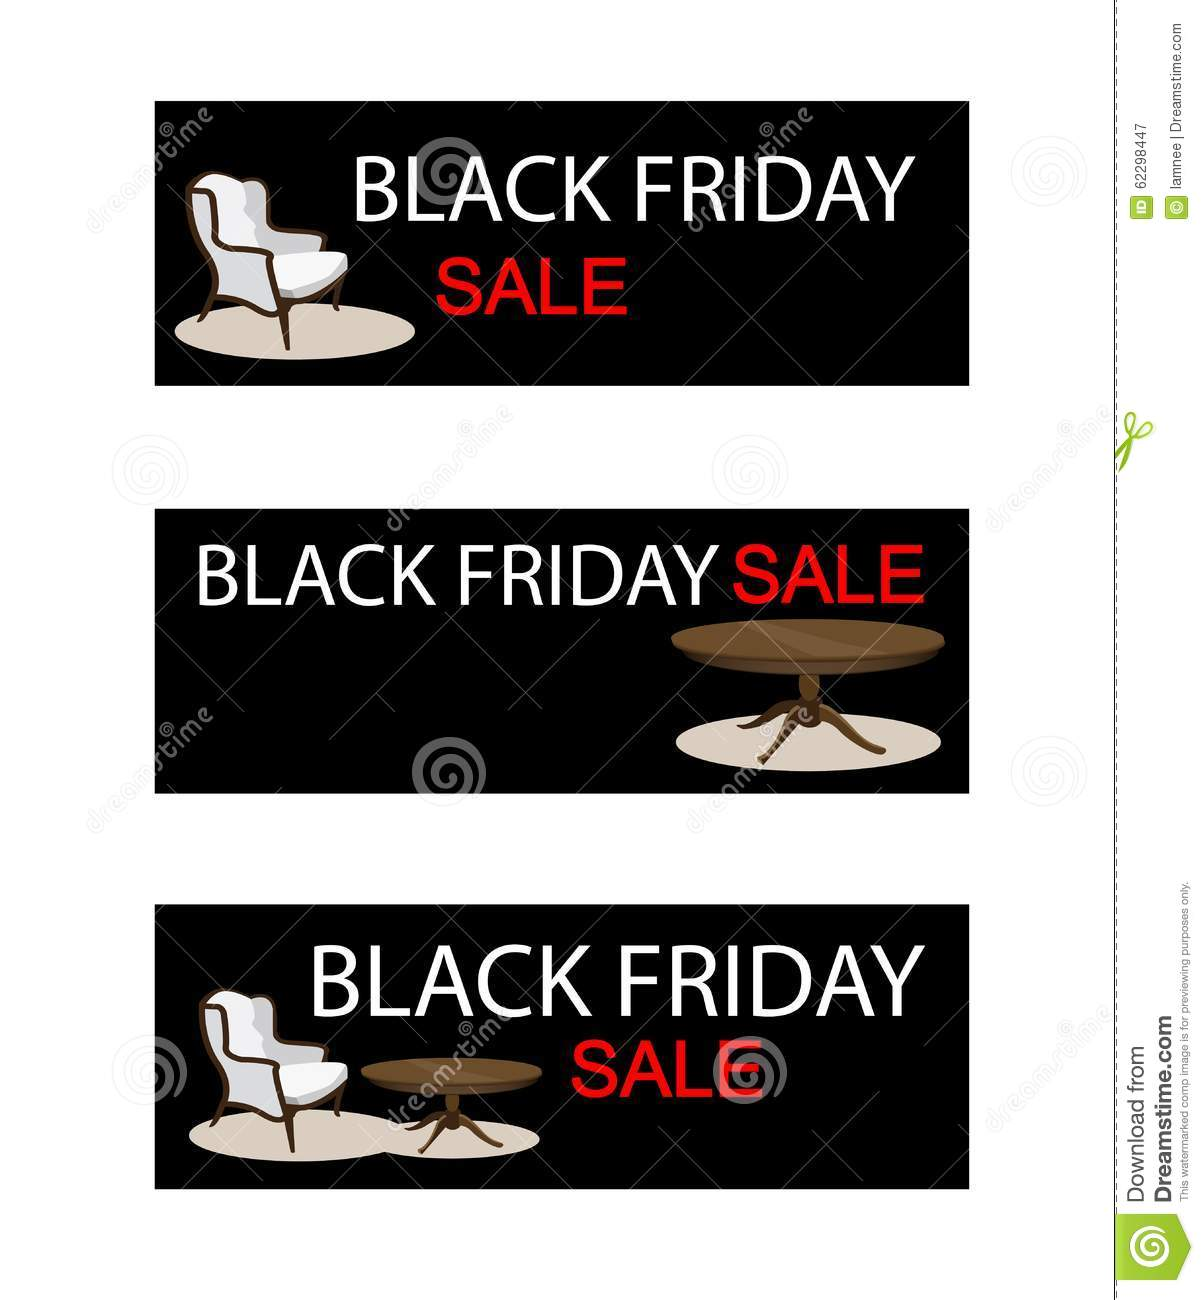 Table And Chair On Black Friday Sale Banner Stock Vector